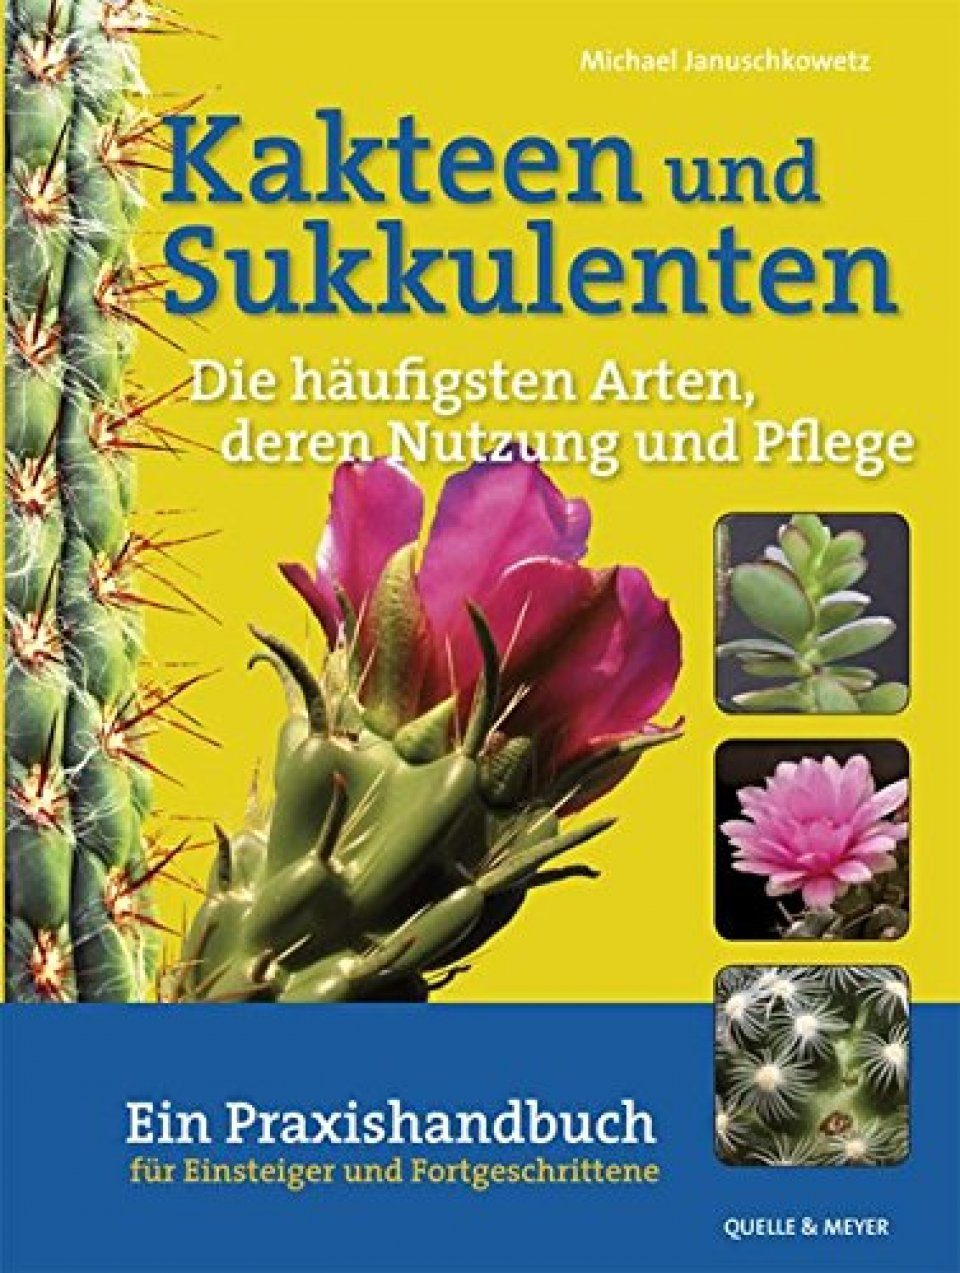 Kakteen und Sukkulenten: Die Häufigsten Arten, deren Nutzung und Pflege [Cacti and Succulents: The Most Common Species, Their Use and Care]